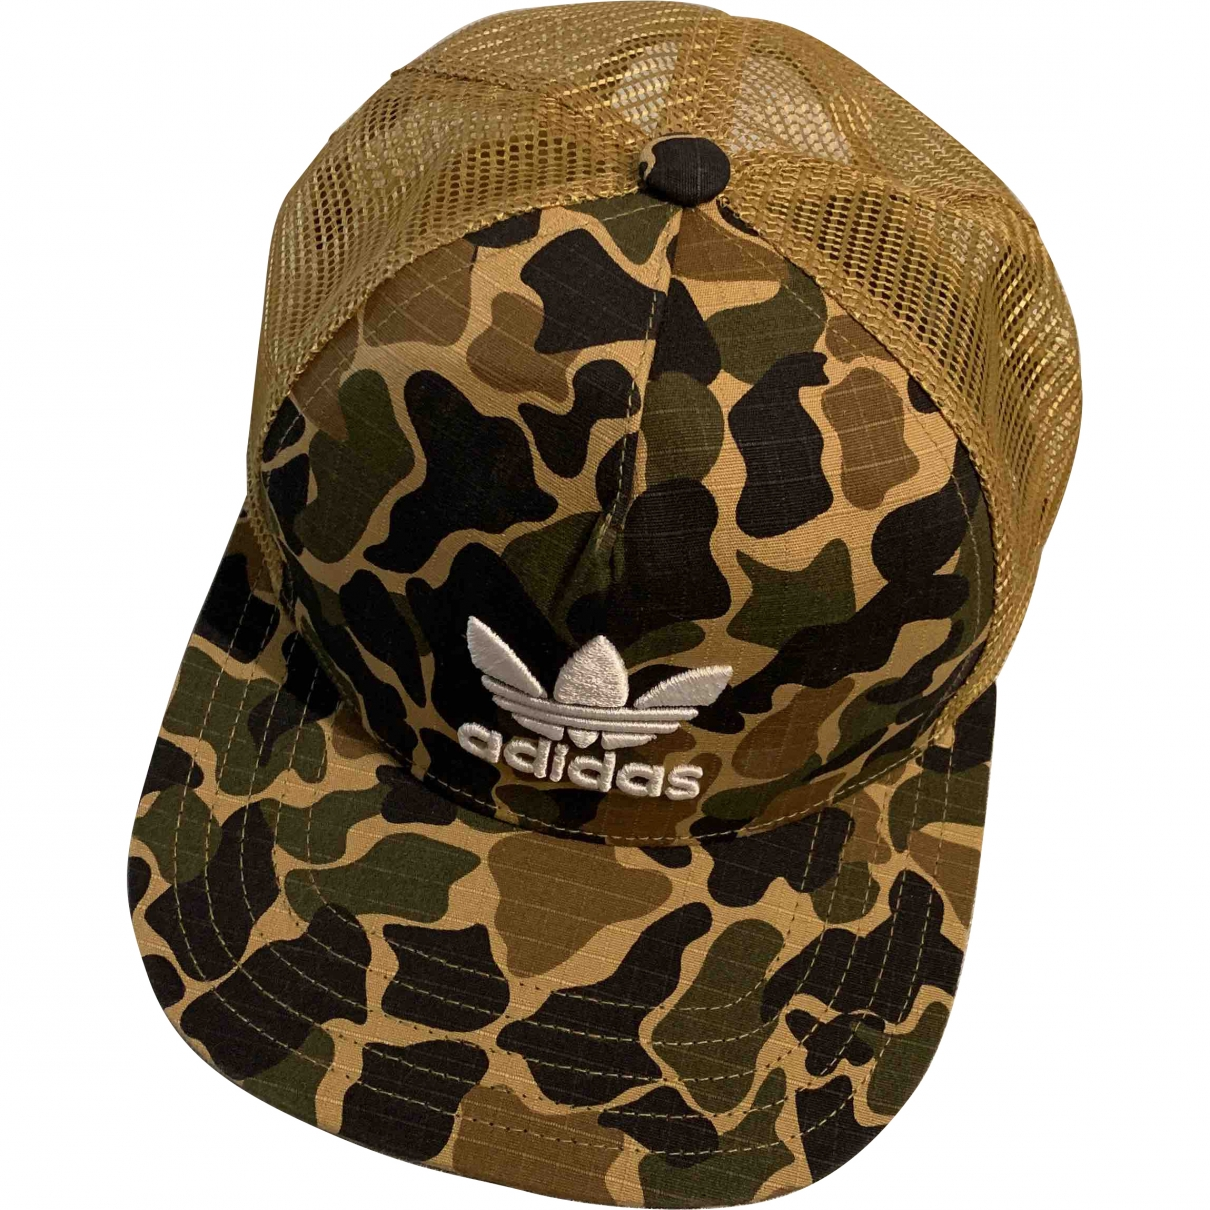 Adidas \N Khaki Cotton hat for Women M International